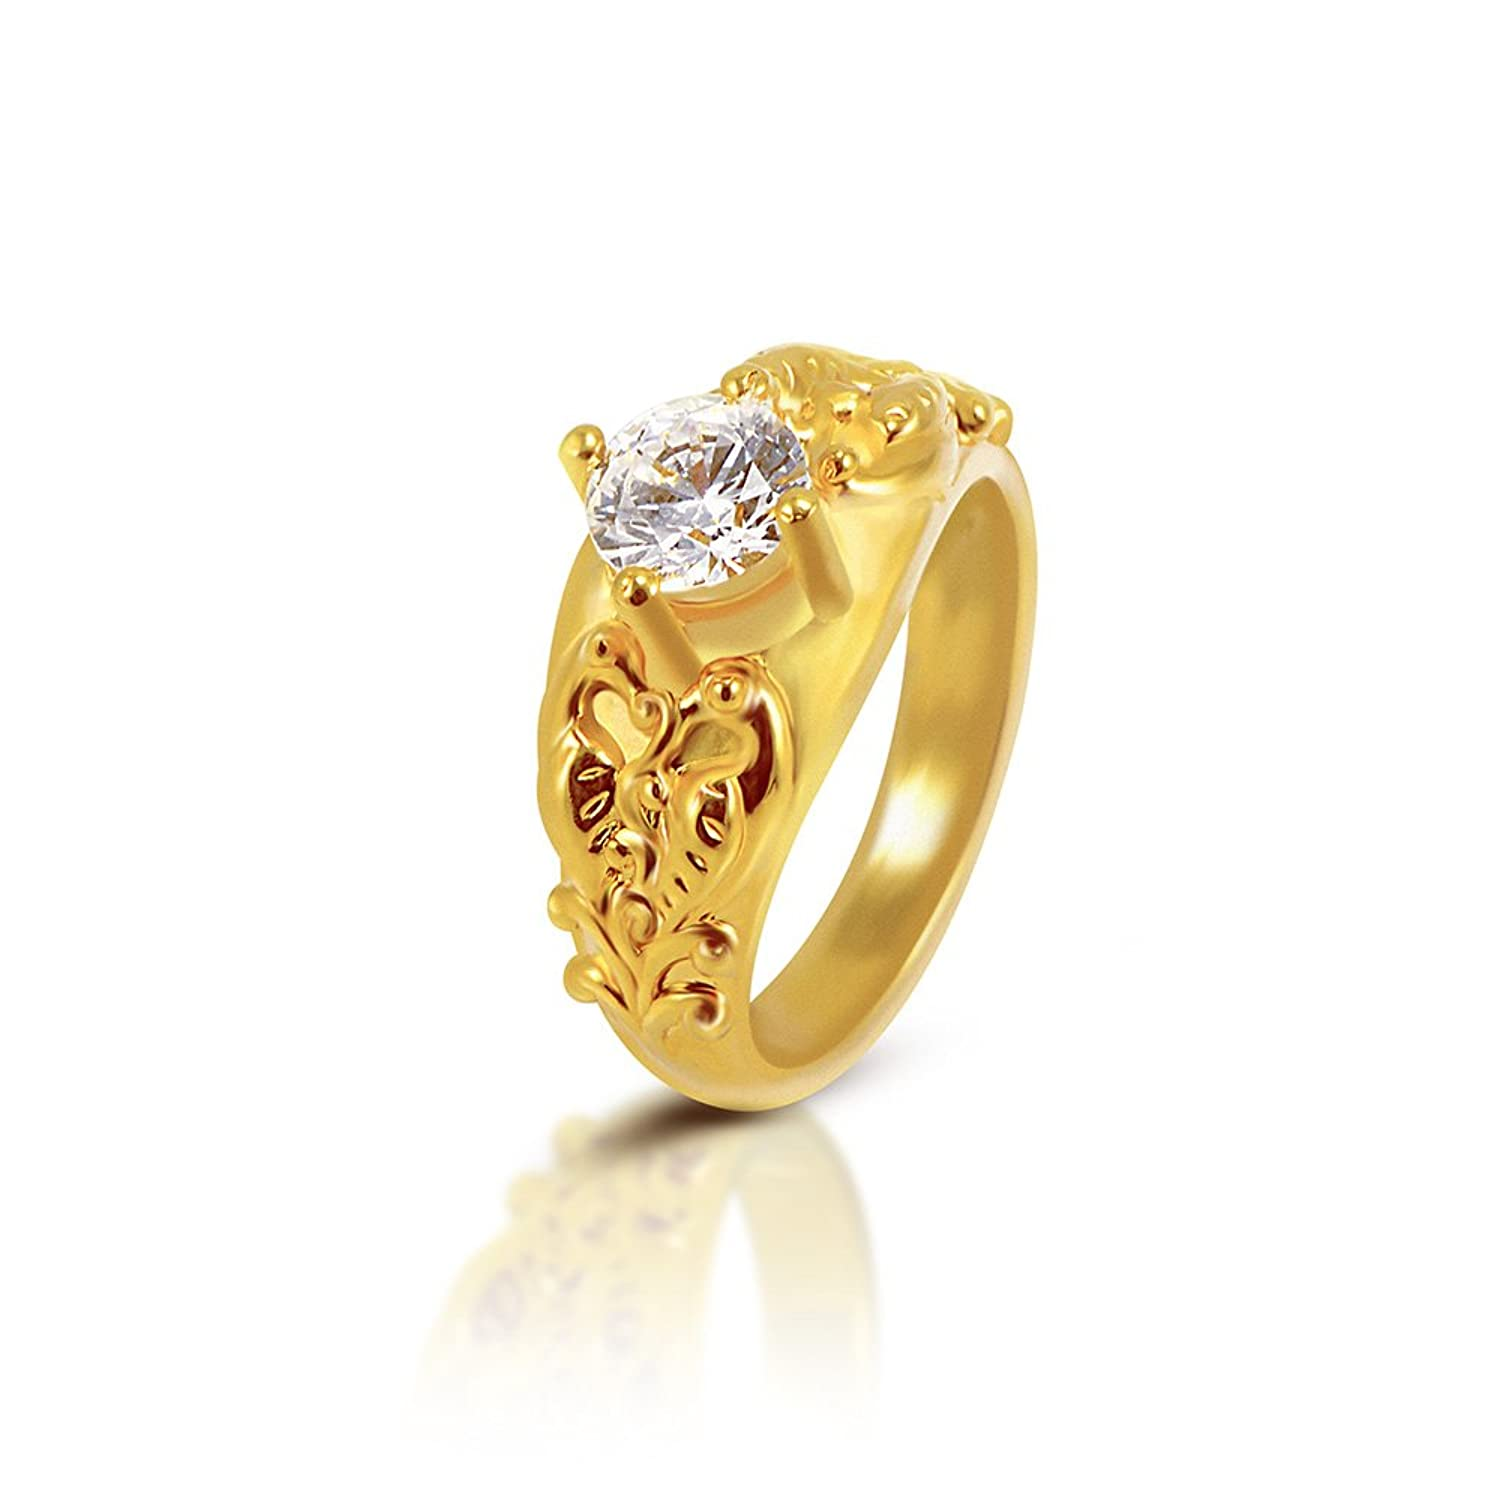 ctgy goldpalace ring d women rings page com gpji k gr enamel for size gold with